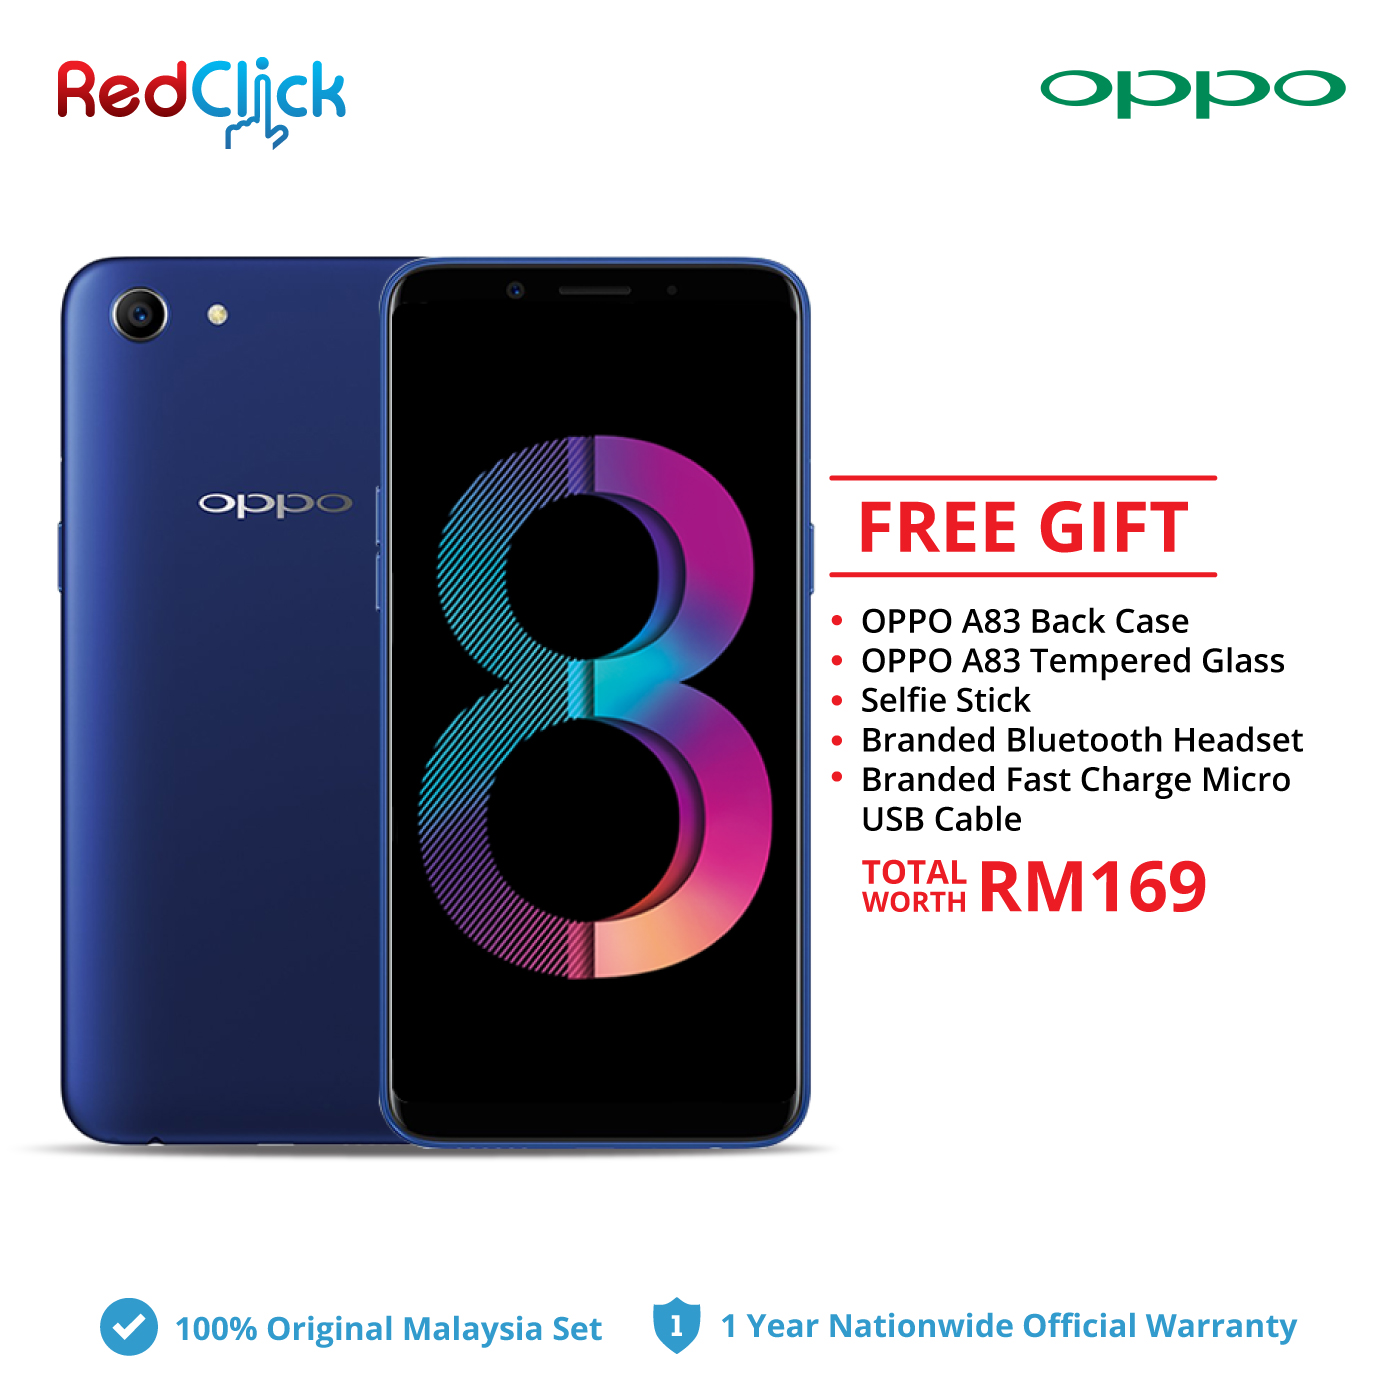 OPPO A83 (3GB/32GB) + 4 Free Gift Worth RM169